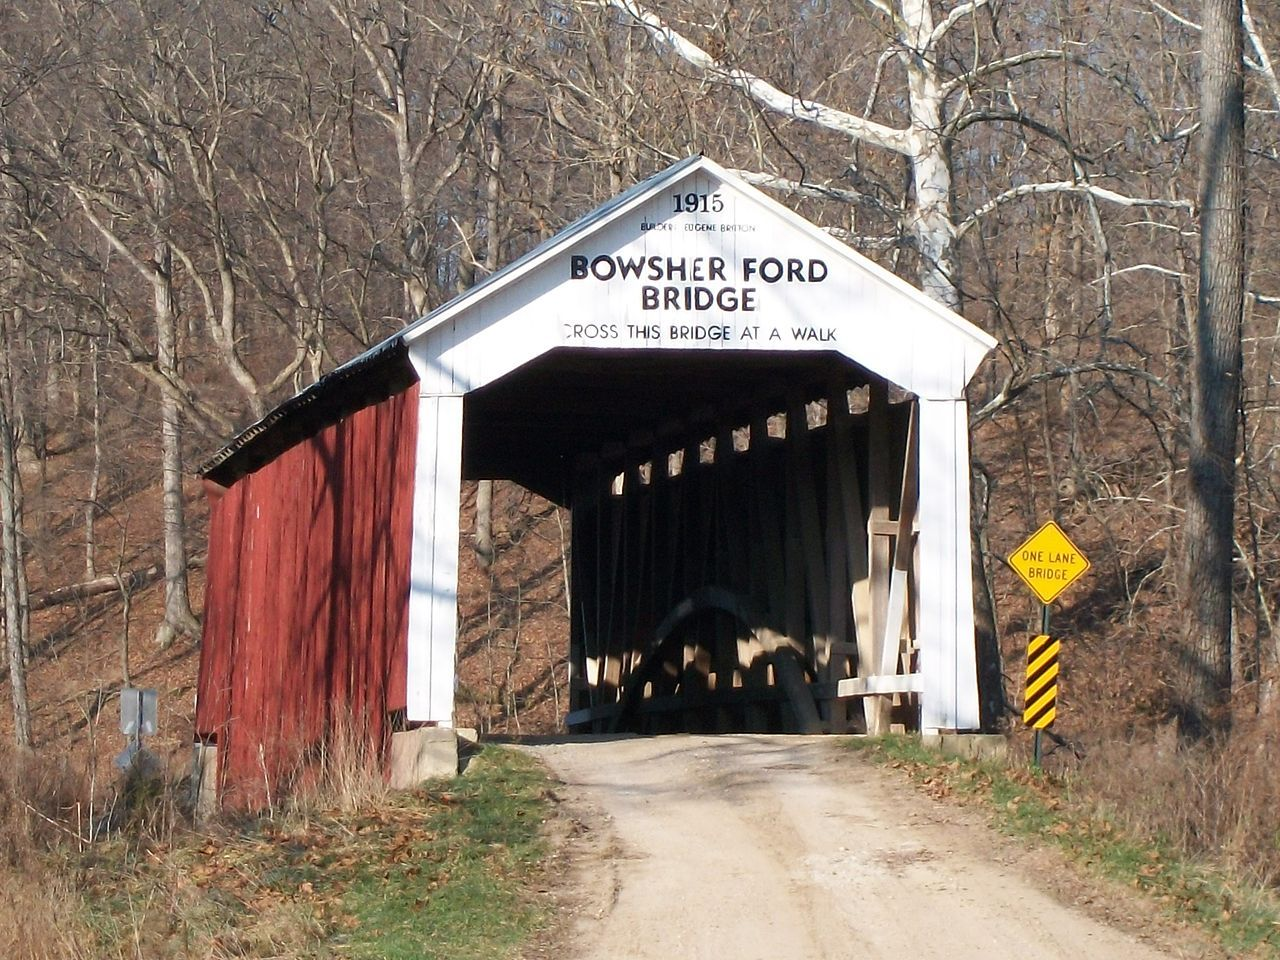 Bowsher ford bridge in parke county indiana covered